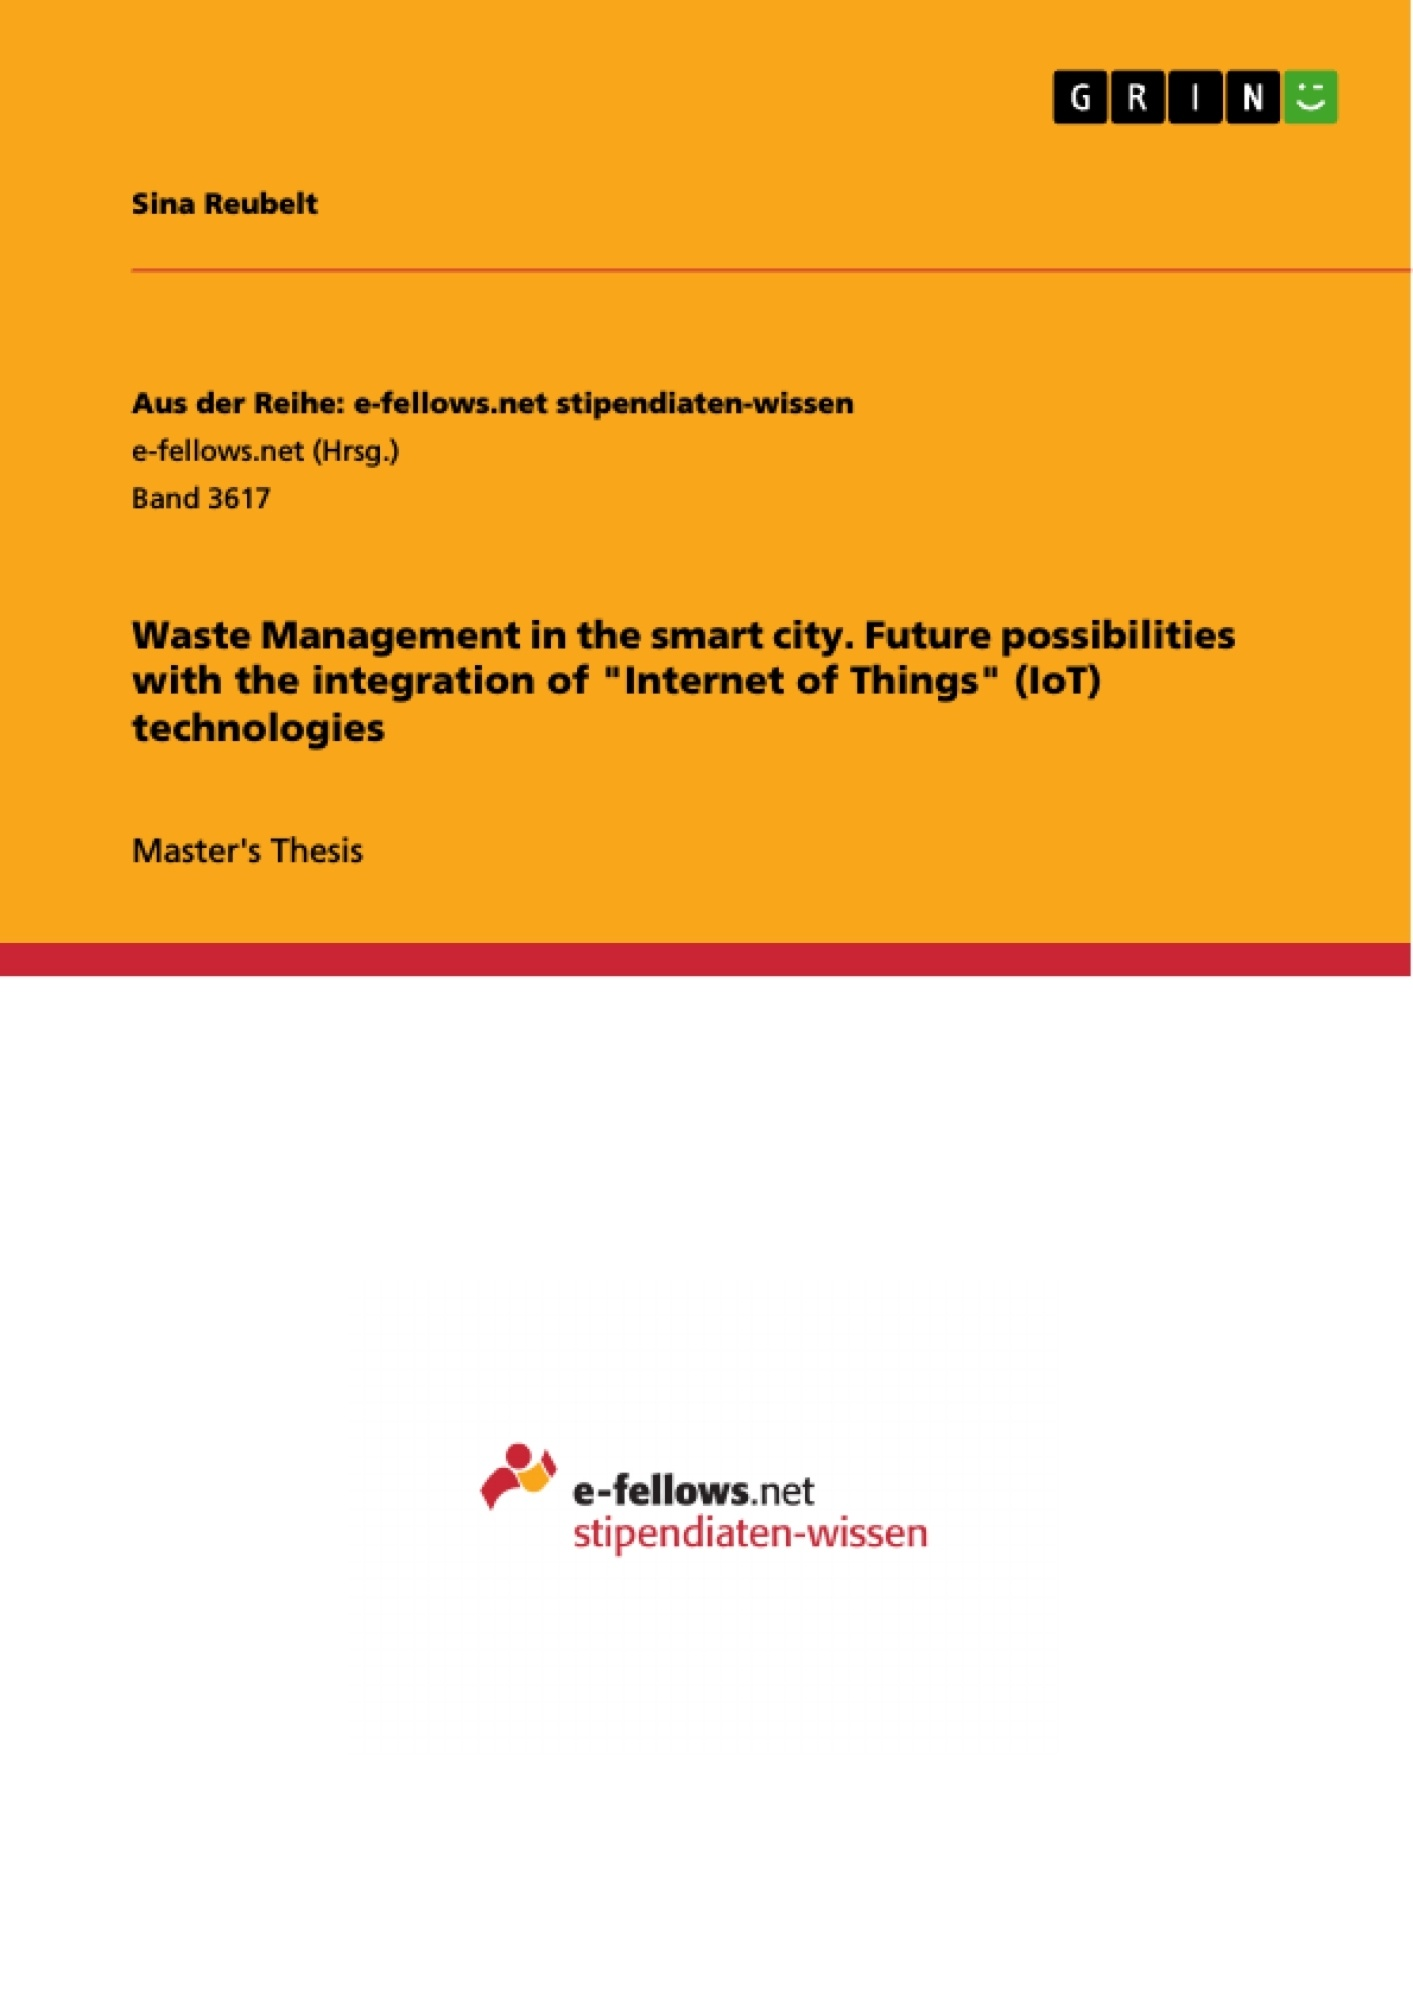 """Title: Waste Management in the smart city. Future possibilities with the integration of """"Internet of Things"""" (IoT) technologies"""